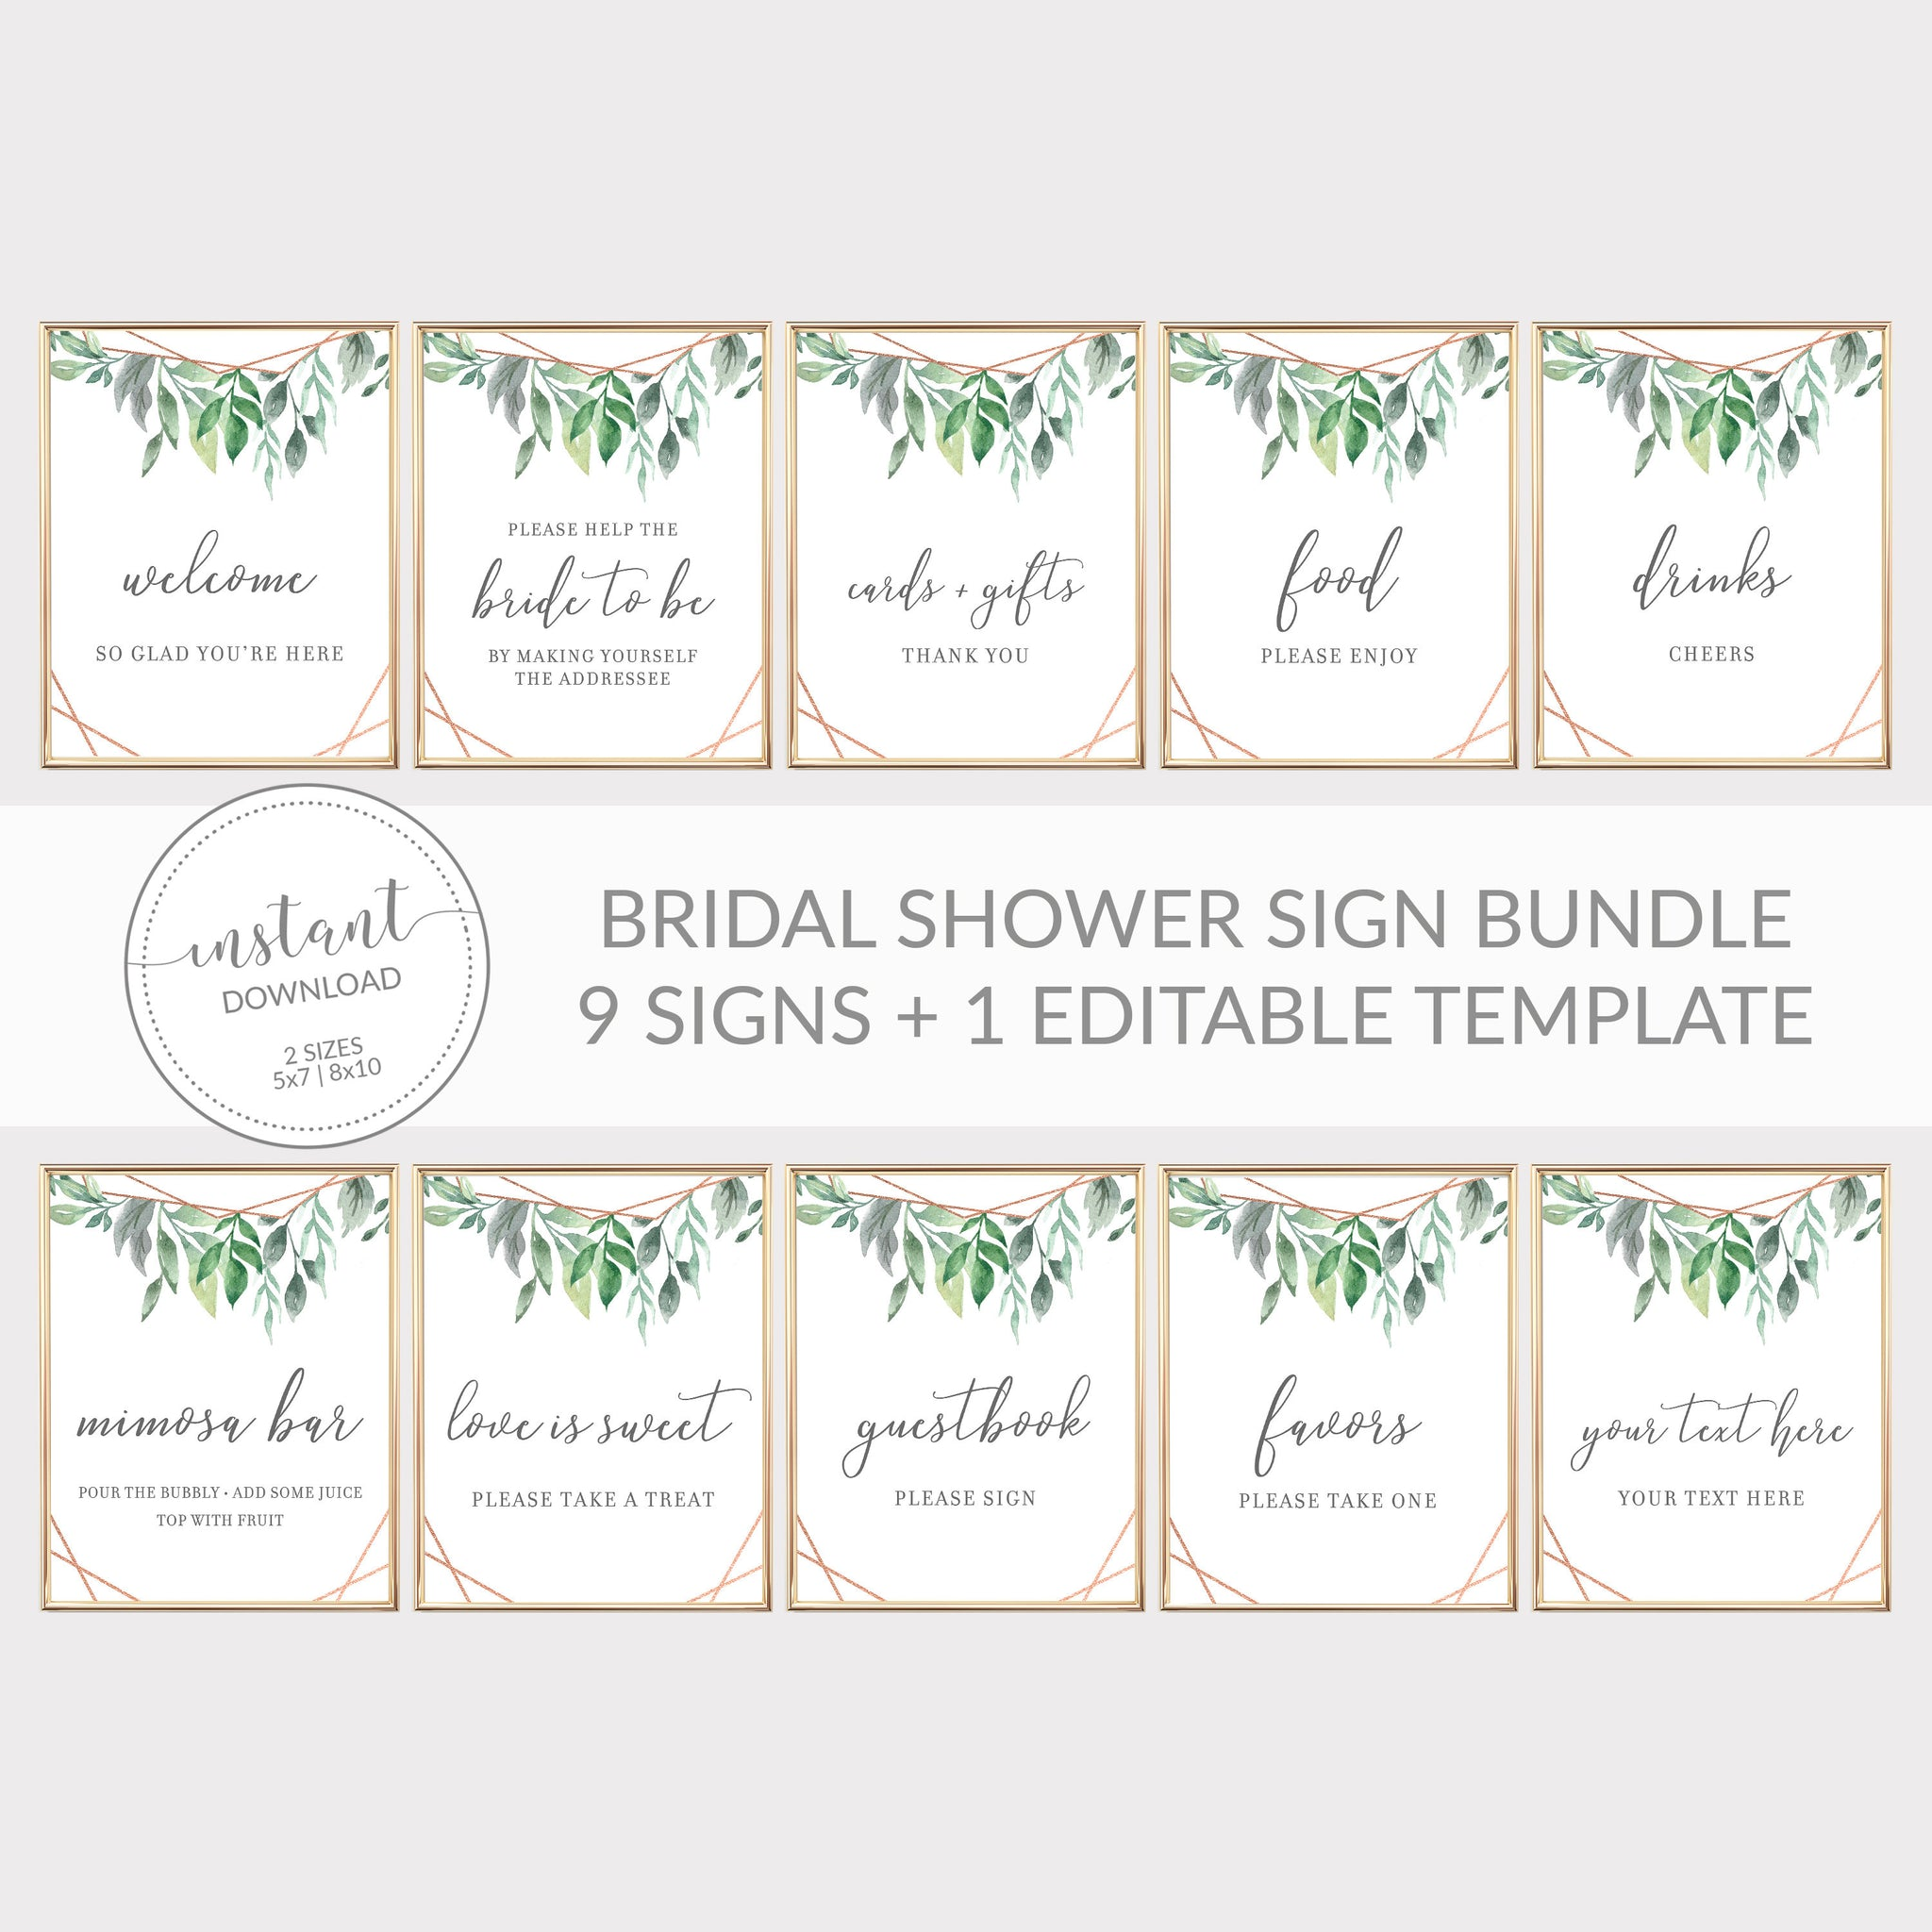 Geometric Rose Gold Greenery Printable Bridal Shower Sign Bundle, INSTANT DOWNLOAD, Editable Bridal Shower Sign, Decorations - GFRG100 - @PlumPolkaDot